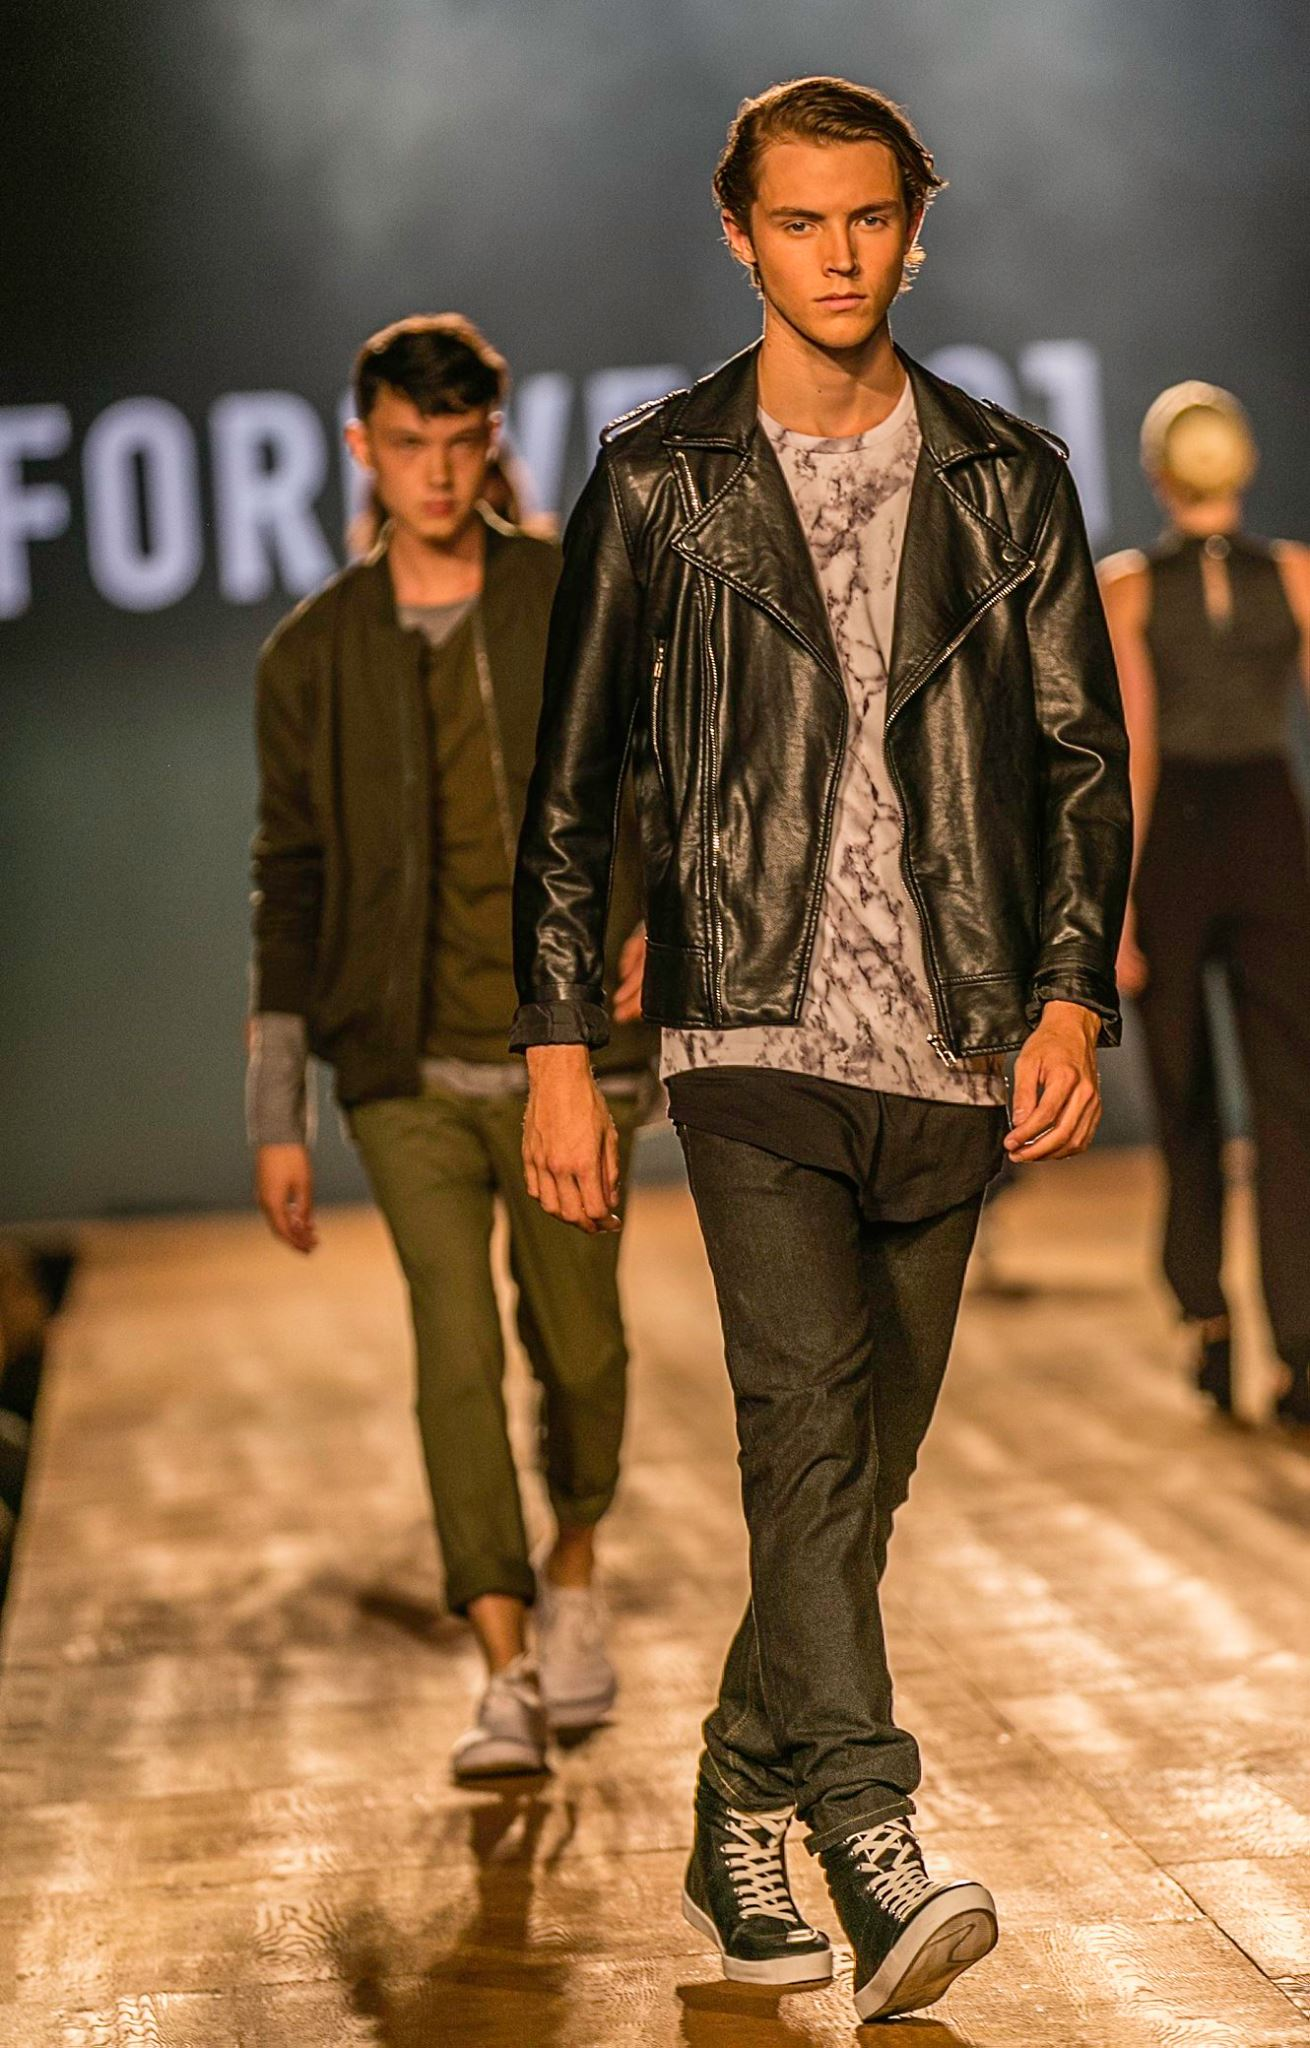 Photographer: Johanna Stosik. Montreal Fashion & Design Festival 2015 - Forever 21 fashion show